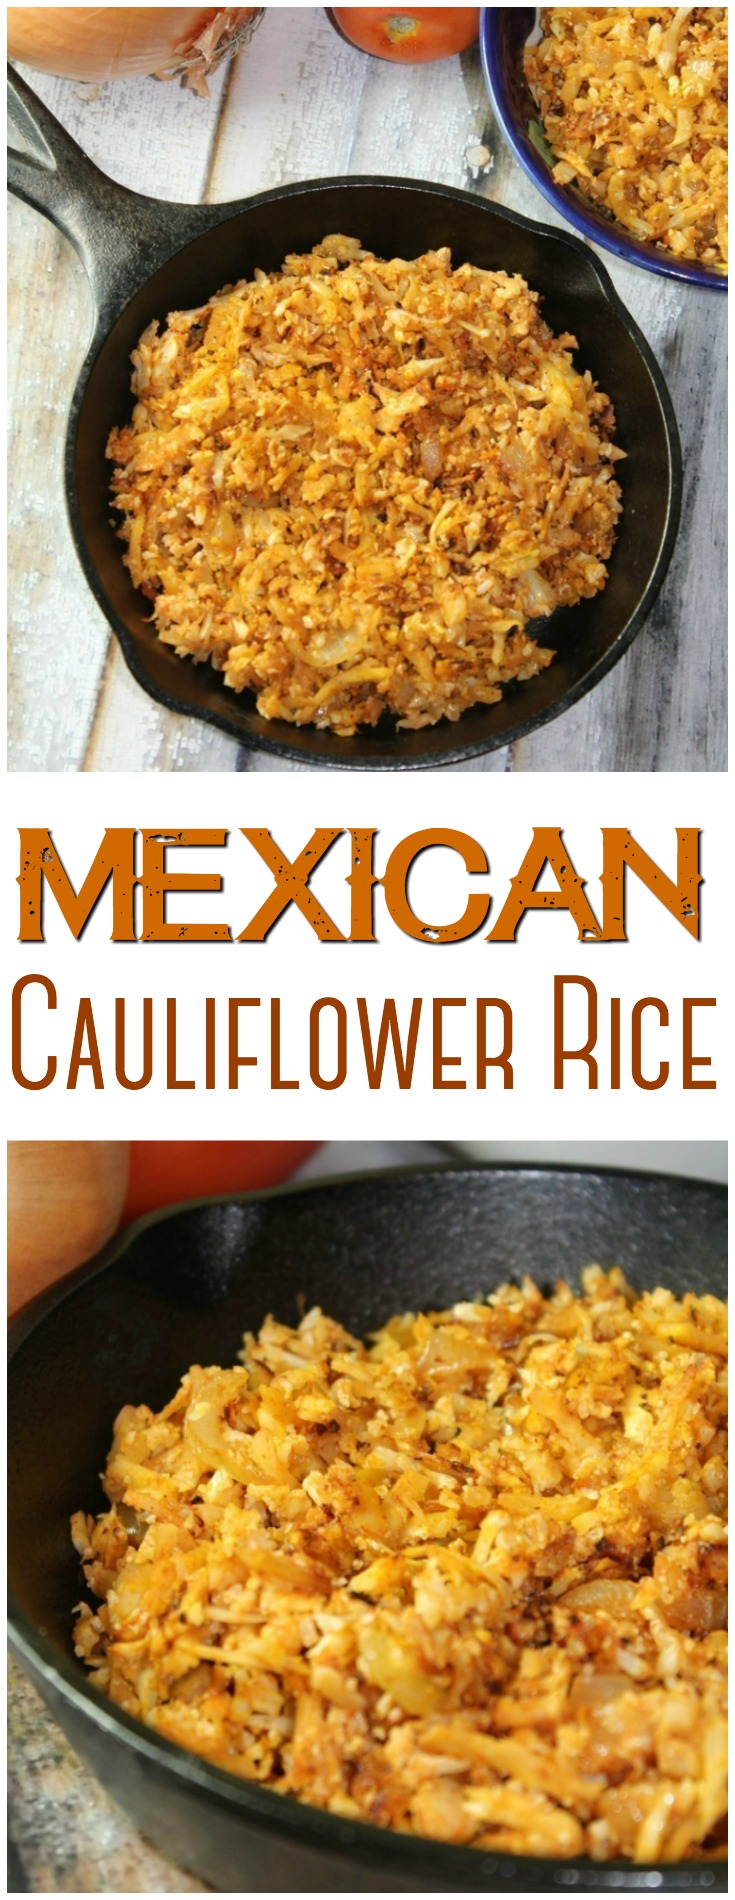 You can make this Mexican Cauliflower Rice in less than 15 minutes with simple ingredients!  It's a great low-carb alternative to traditional Mexican rice.